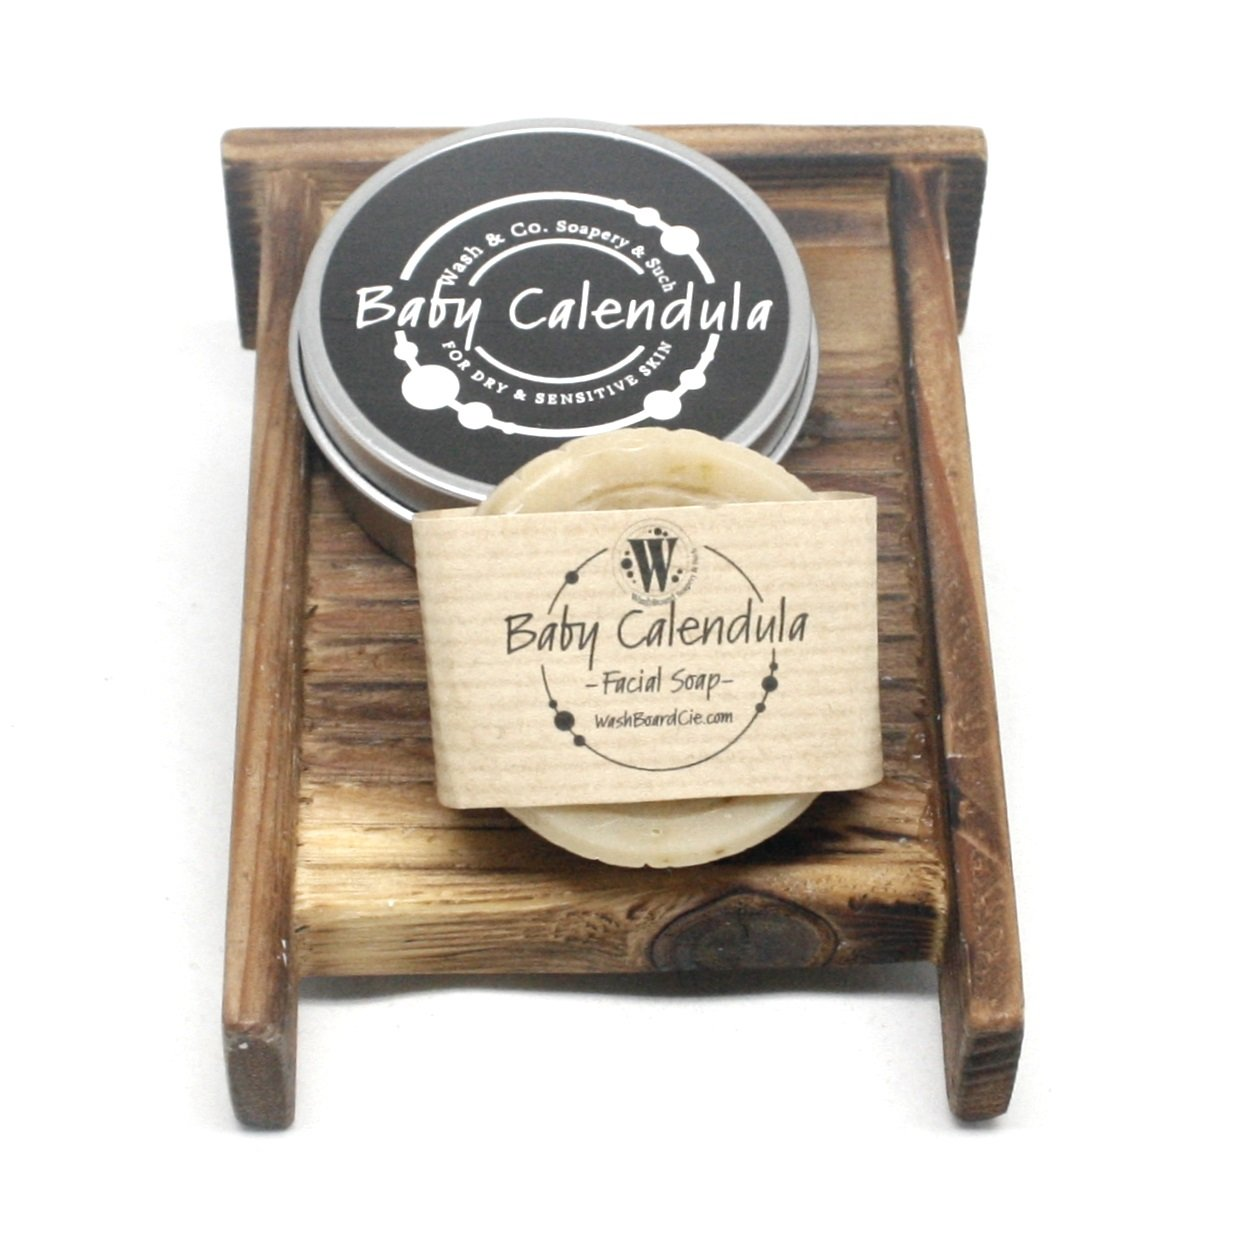 Baby Calendula Facial Soap in a Travel Tin